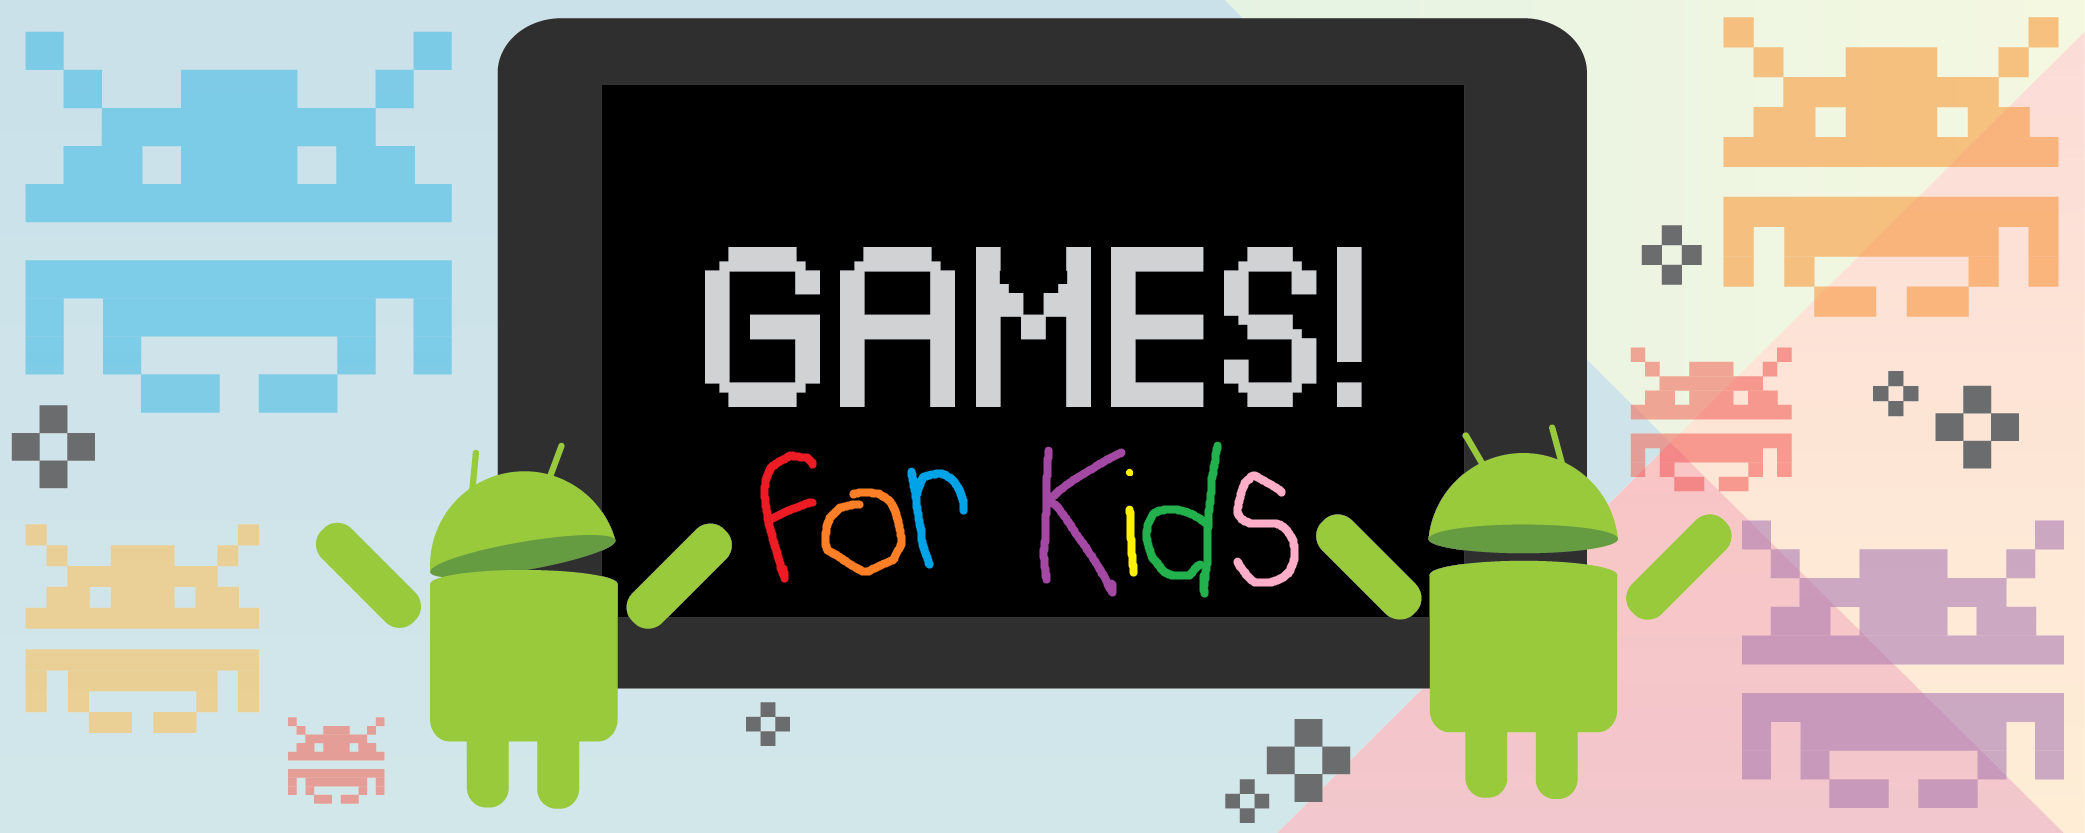 65 Of The Best Android Games For Kids Ages 2 8 Updated For 2021